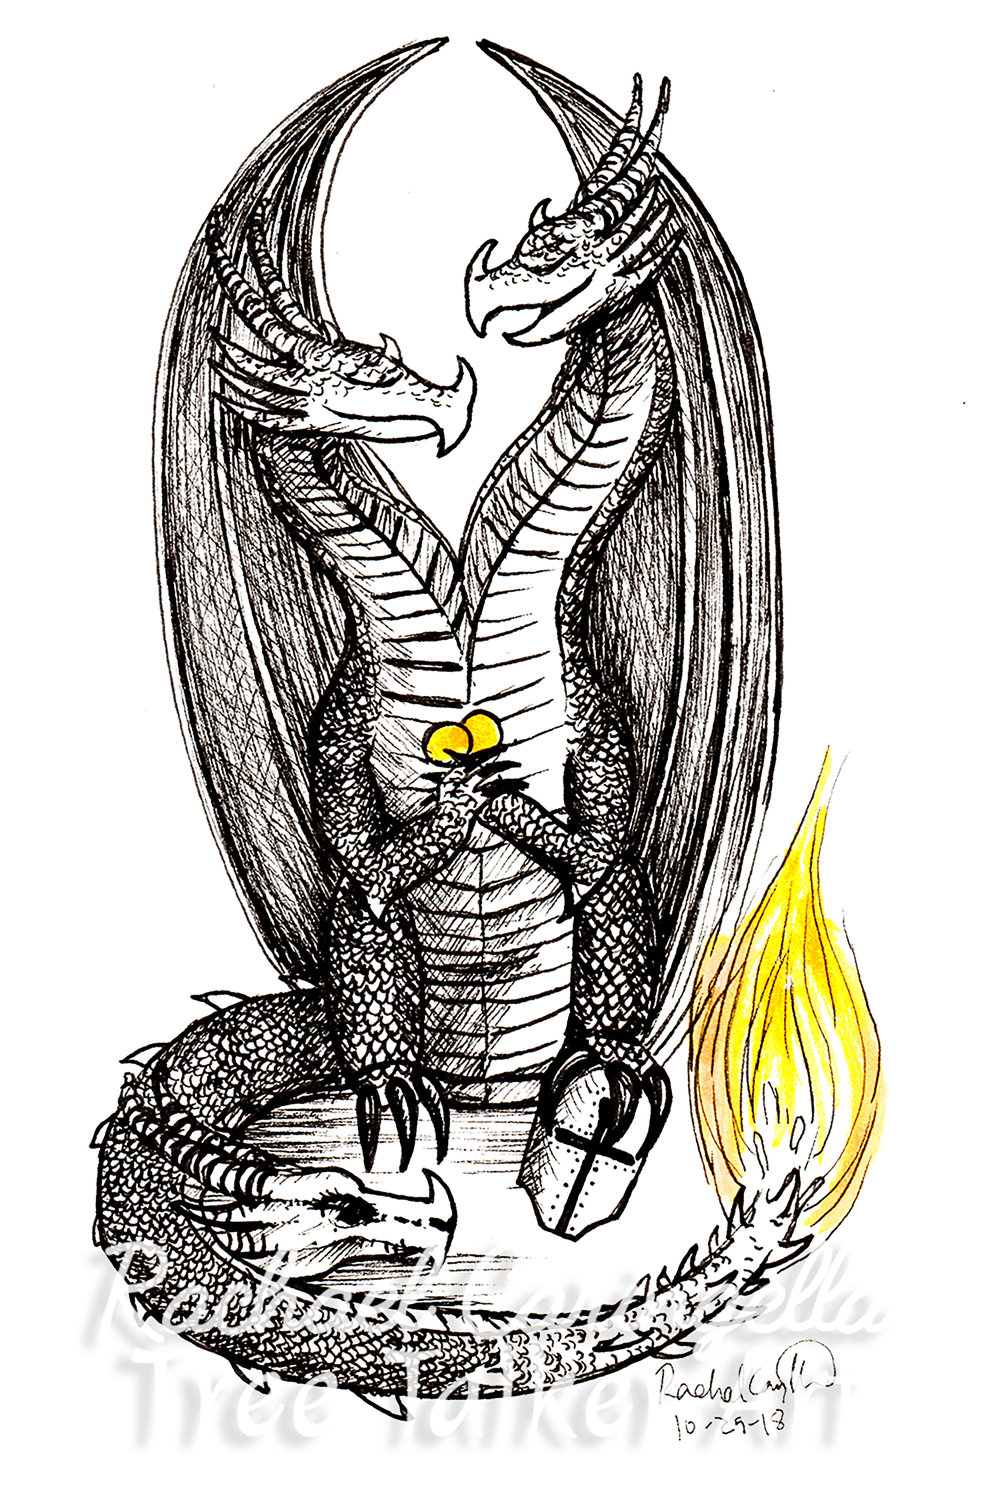 Two Headed Dragon Art Inktober 2018 Illustration of a Two Headed Dragon